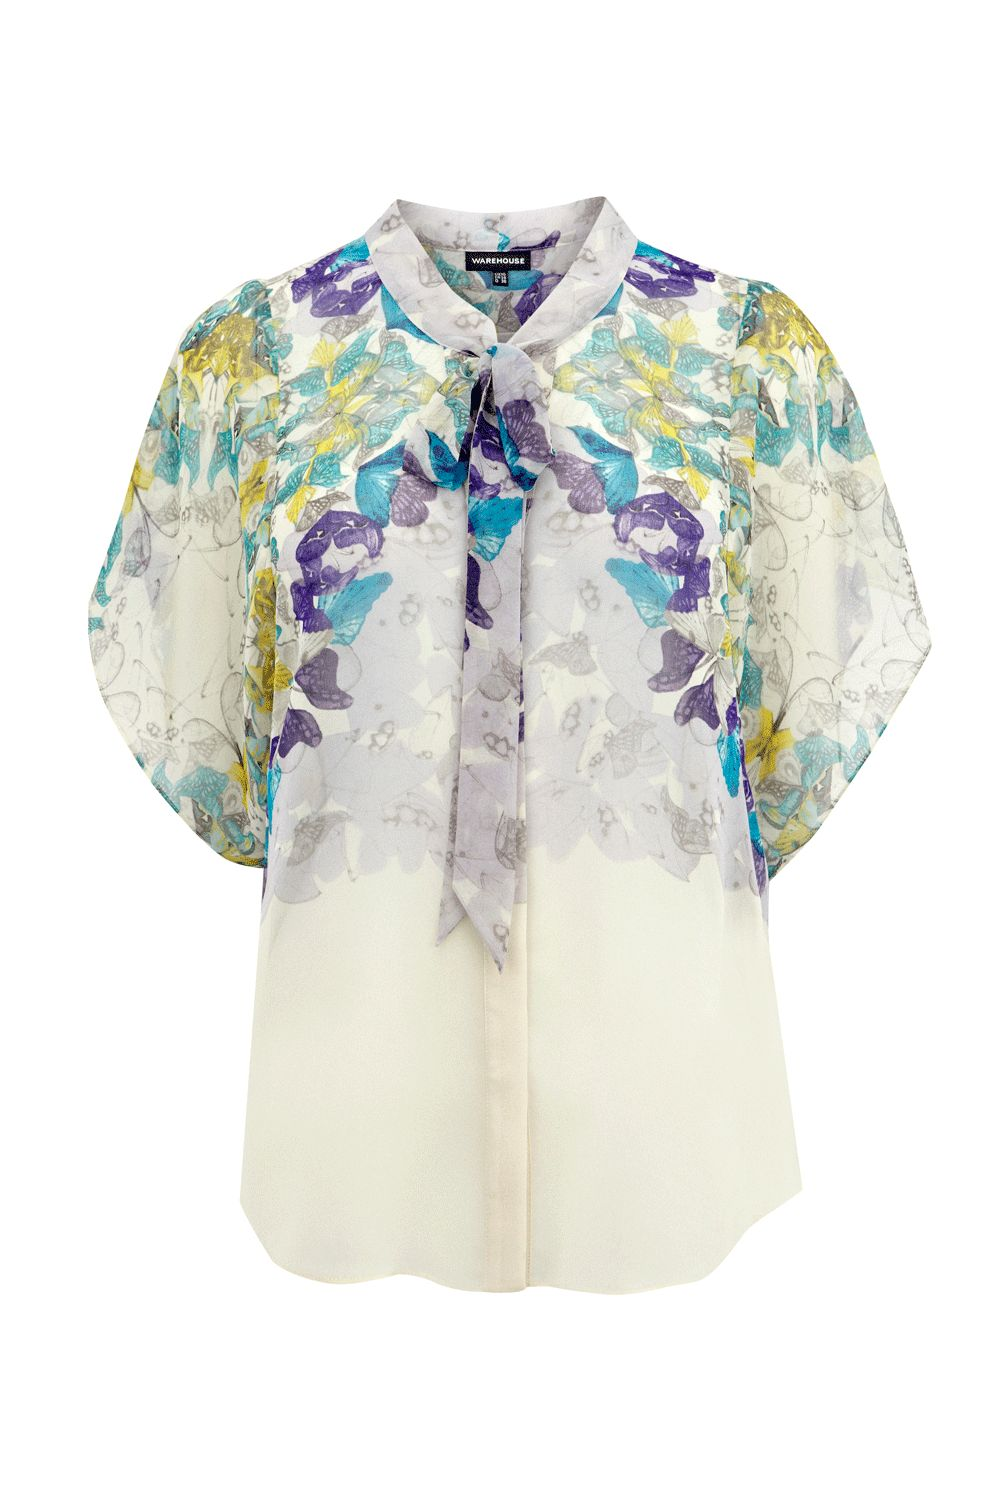 Warehouse Womens Warehouse Circle butterfly blouse, product image